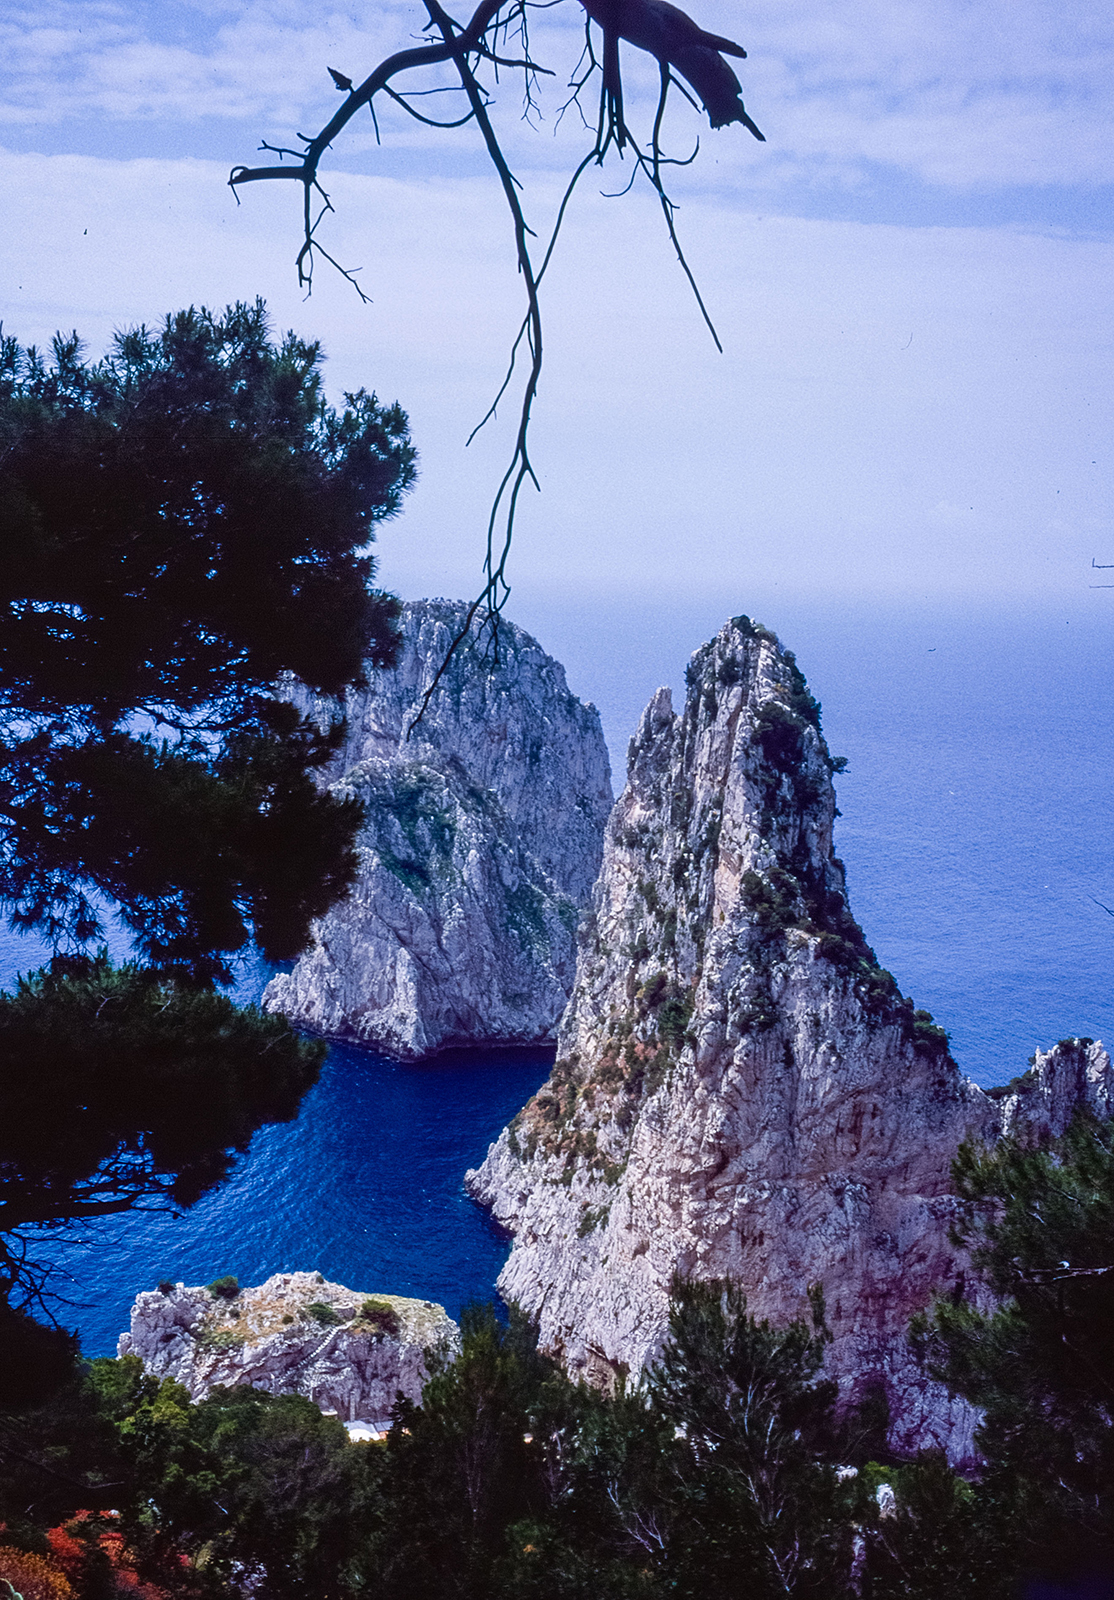 rocks and water, and image from the island of Capri